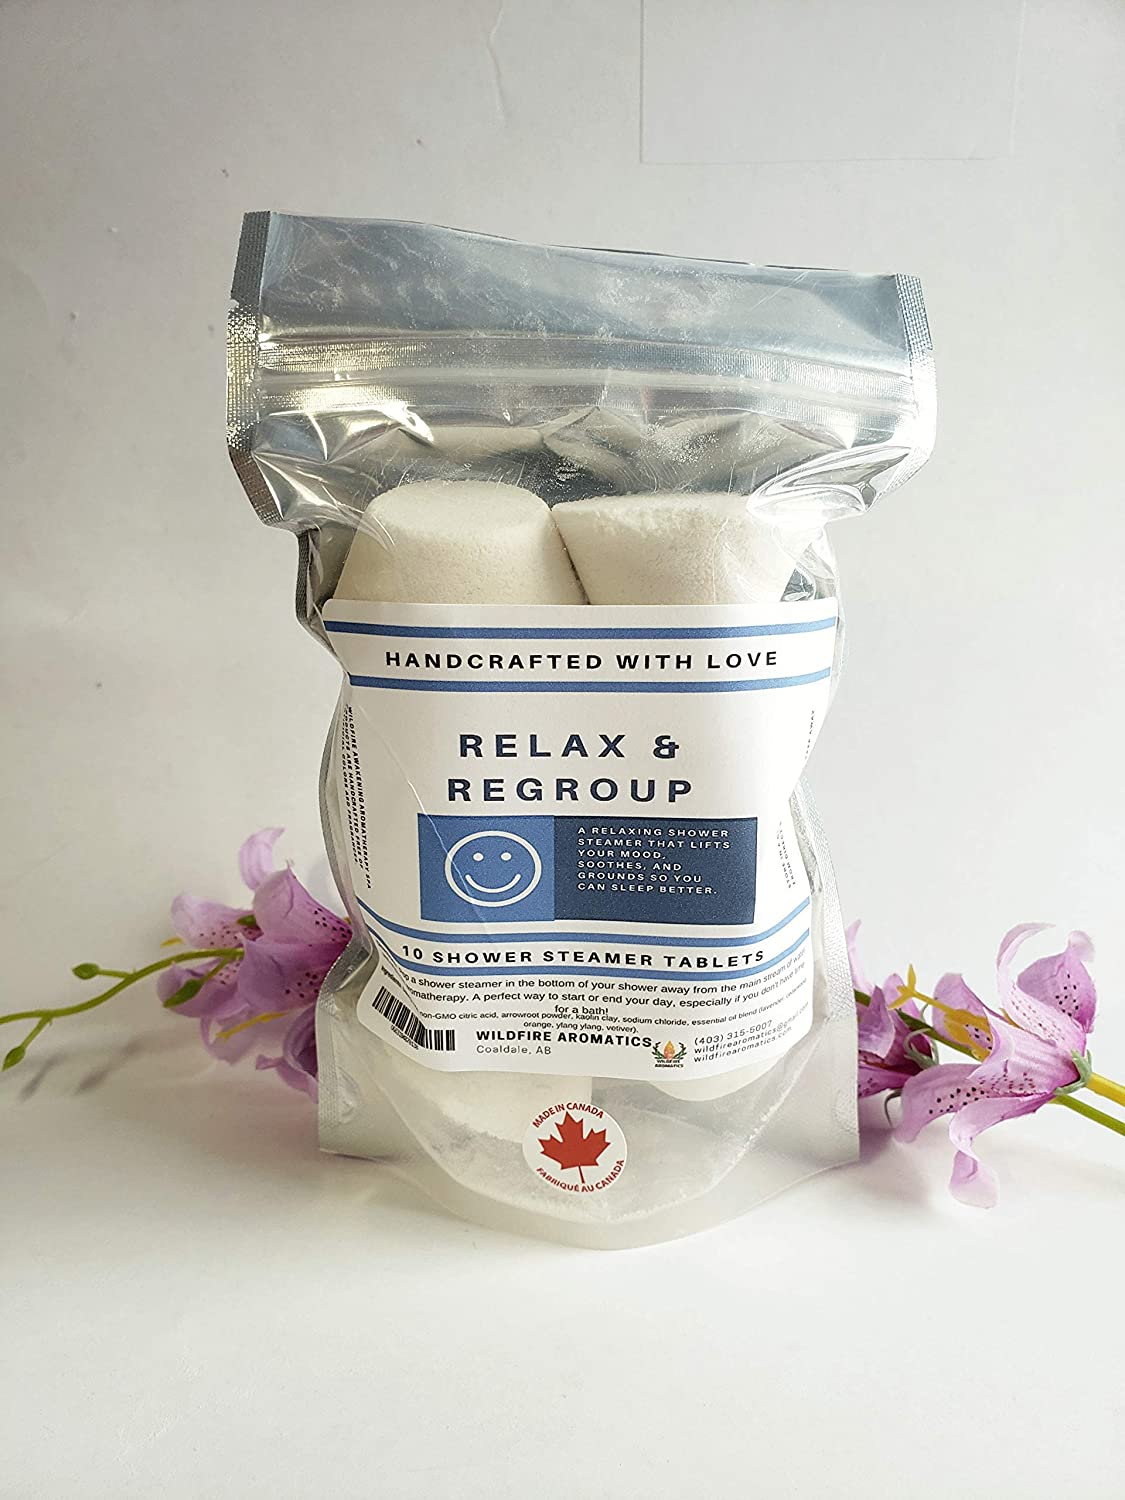 Relax & Regroup Aromatherapy Shower steamer gift pack, 10